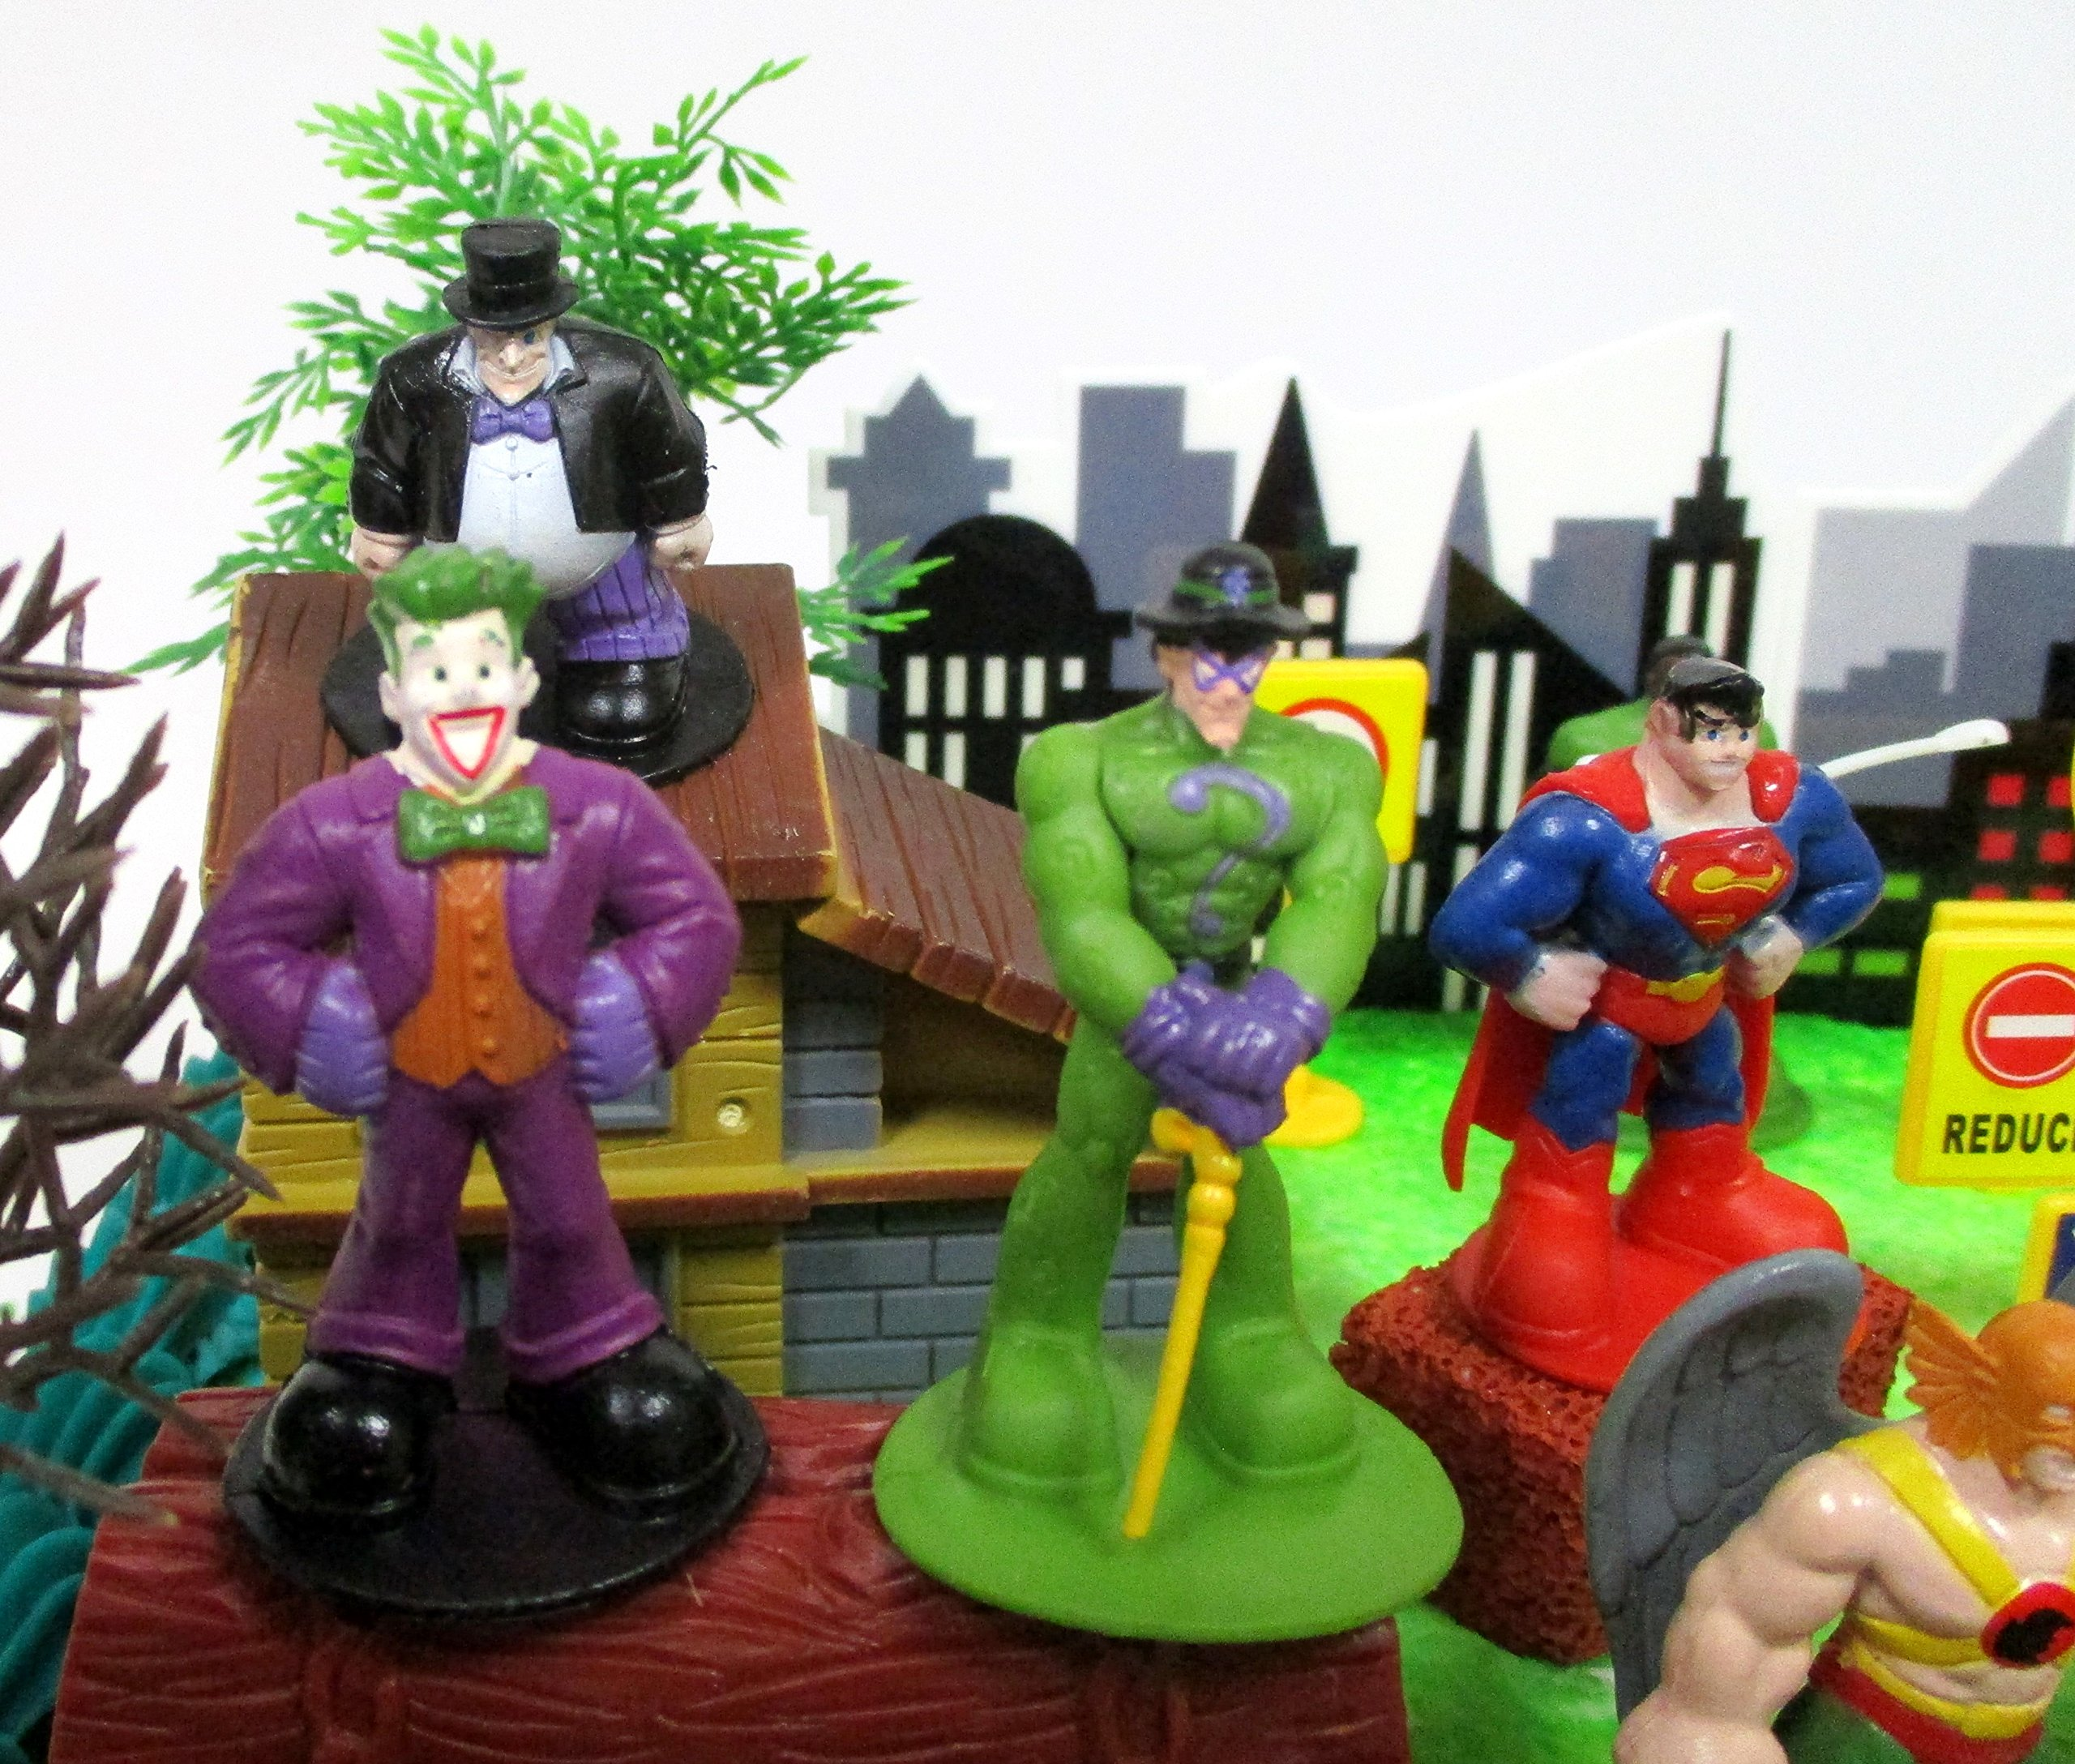 DC Comic Super Friends Birthday Cake Topper Set Featuring Super Hero Crime Fighters and Villains with Decorative Accessories by Kitoo (Image #2)